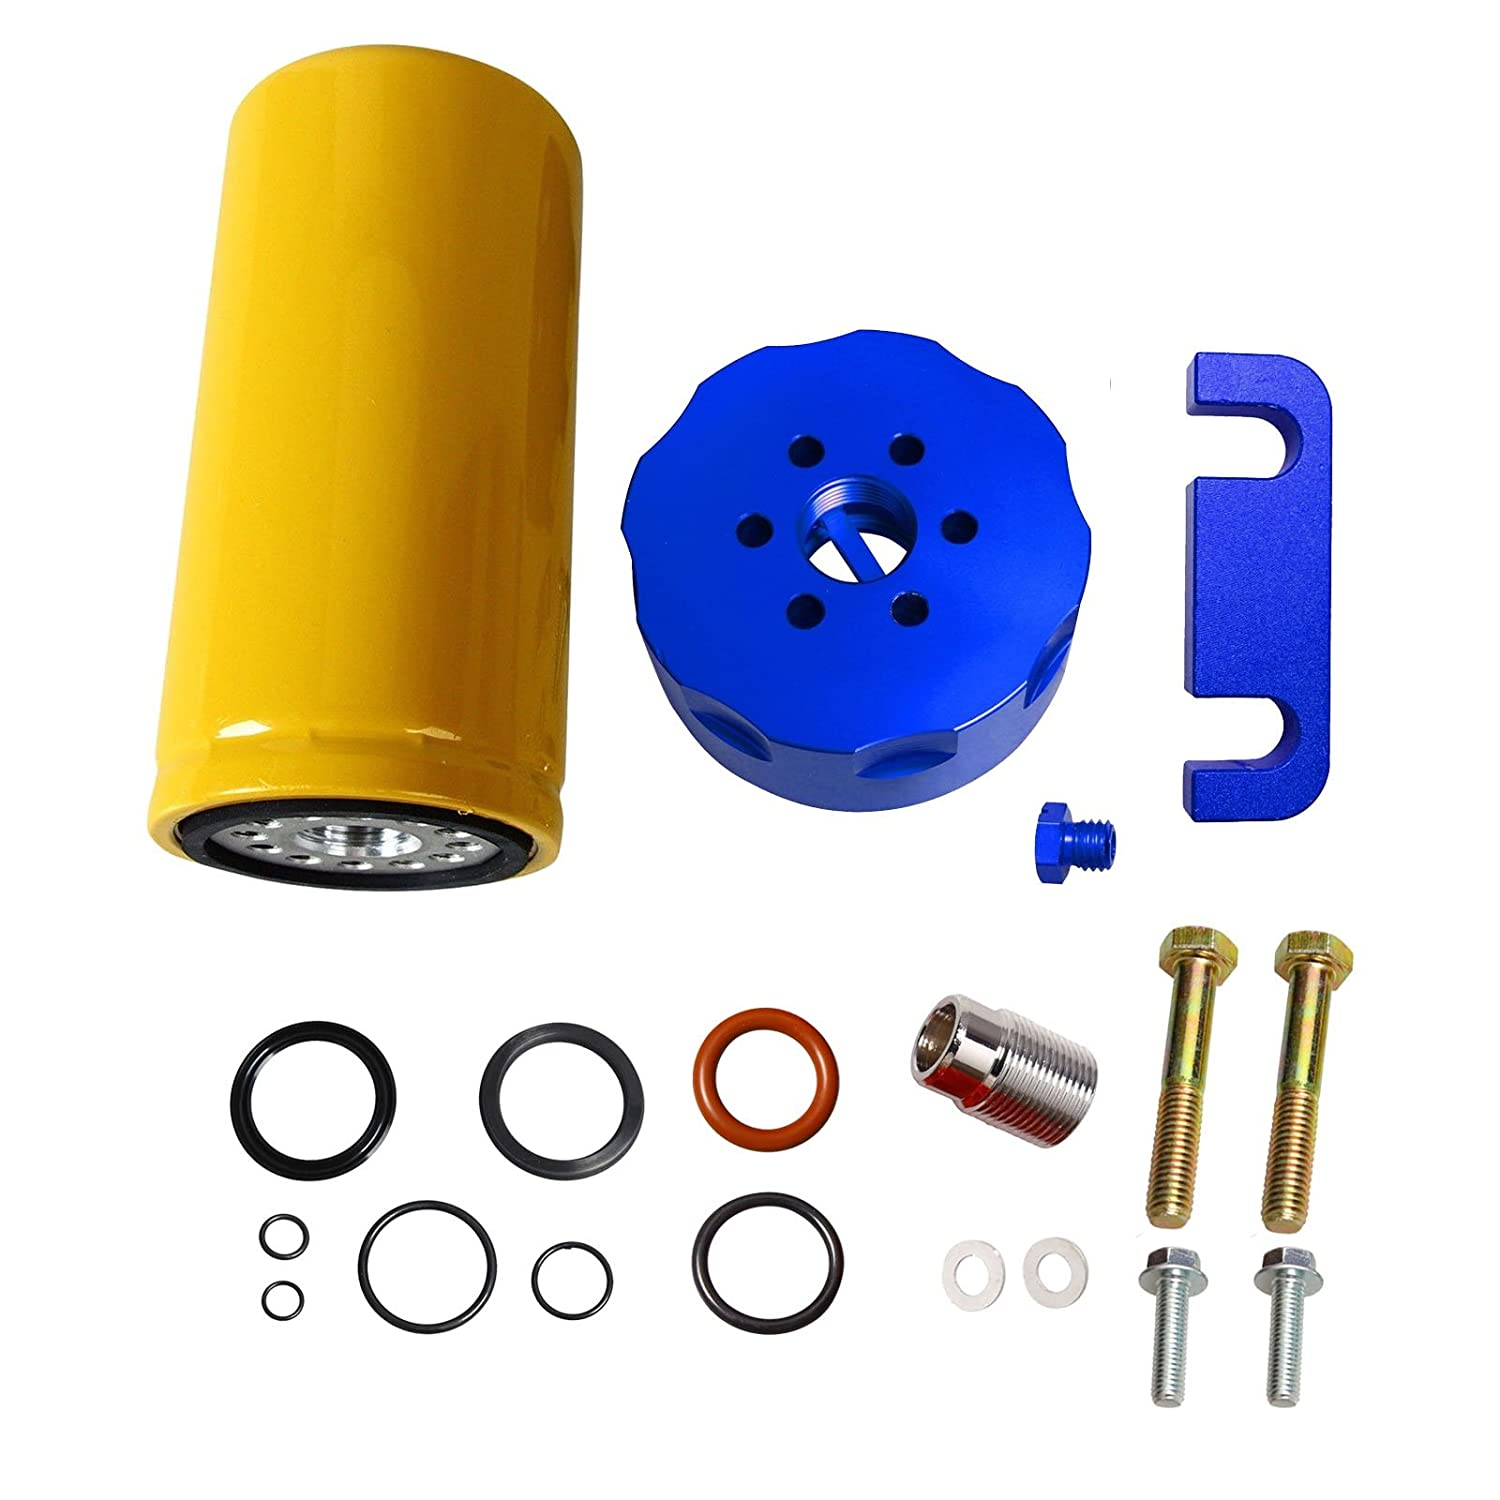 Yjracing Cat Fuel Filter Adapter Conversion Kit Fit For 01 Duramax Housing 06 Chevy Gm 66l Diesel Blue Automotive